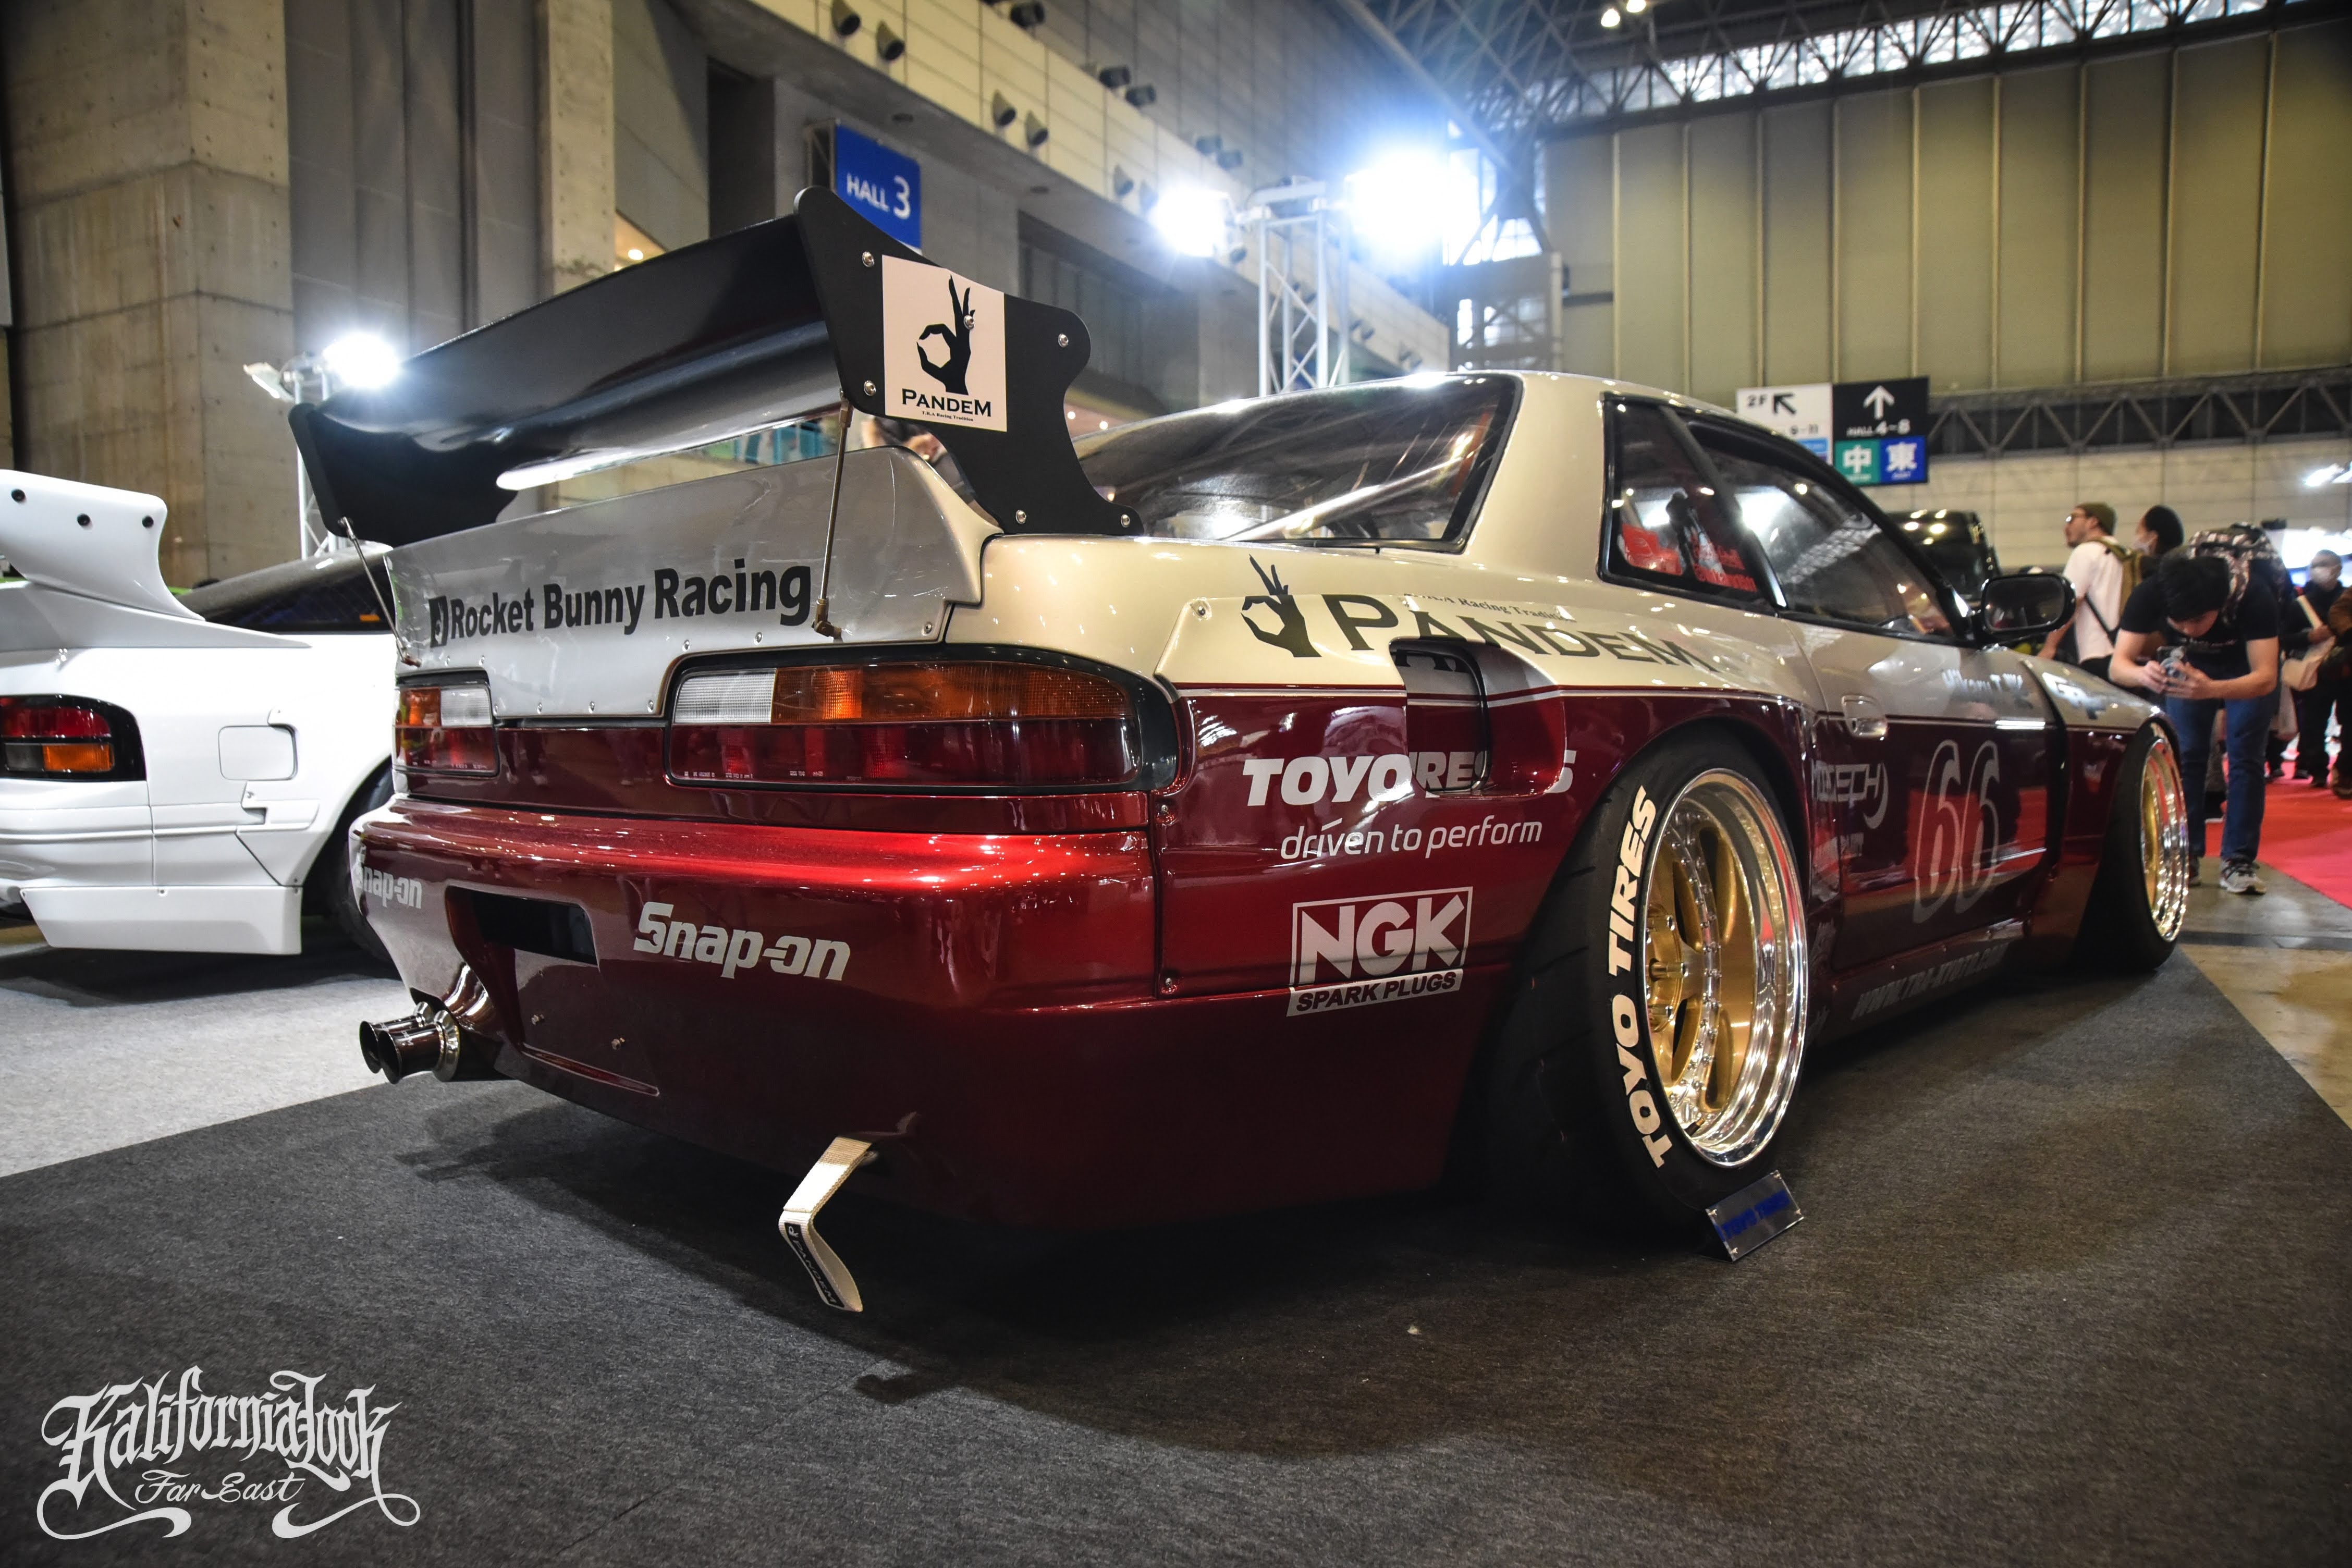 Rocket Bunny S13 Silvia by TRA KYOTO Tokyo Auto Salon 2020 More Photos will be up on www.Superfly-Autos.com